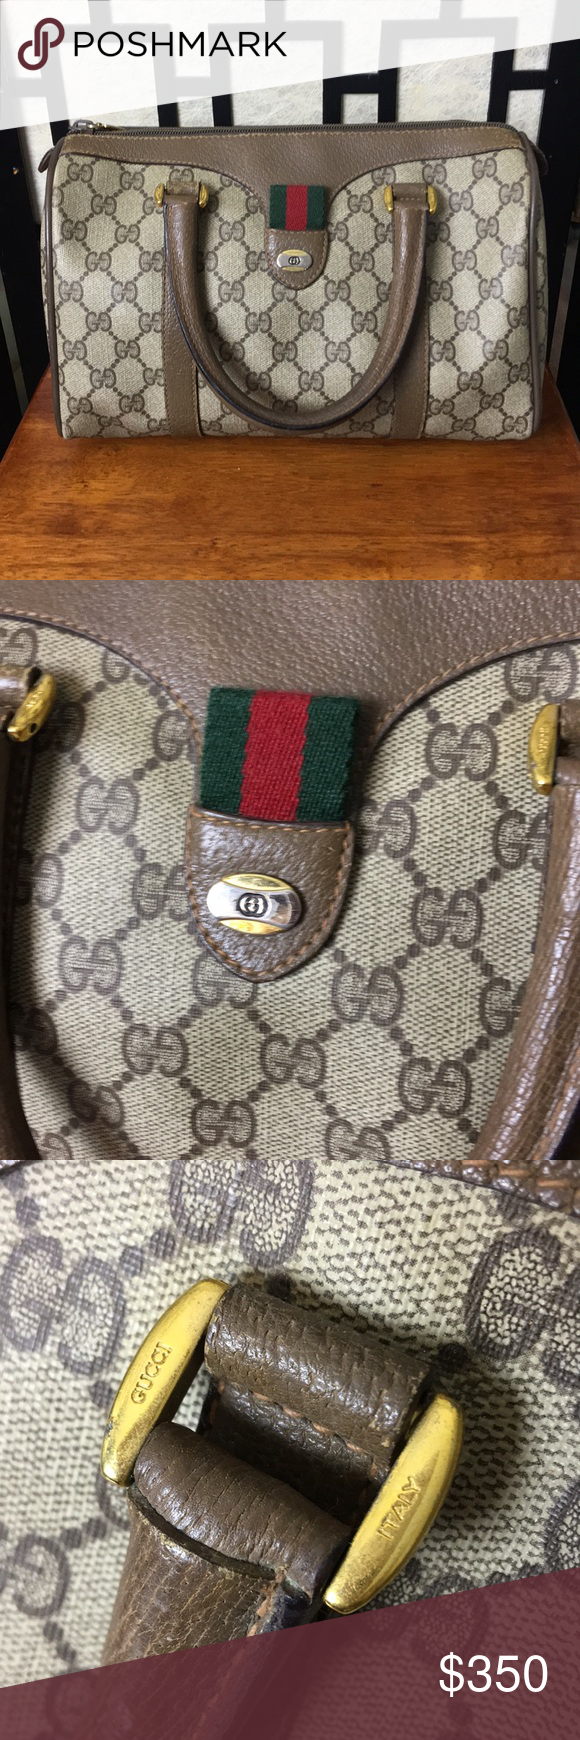 58b492c8c4ca Spotted while shopping on Poshmark: Vintage Gucci Accessory Boston bag! # poshmark #fashion #shopping #style #Gucci #Handbags